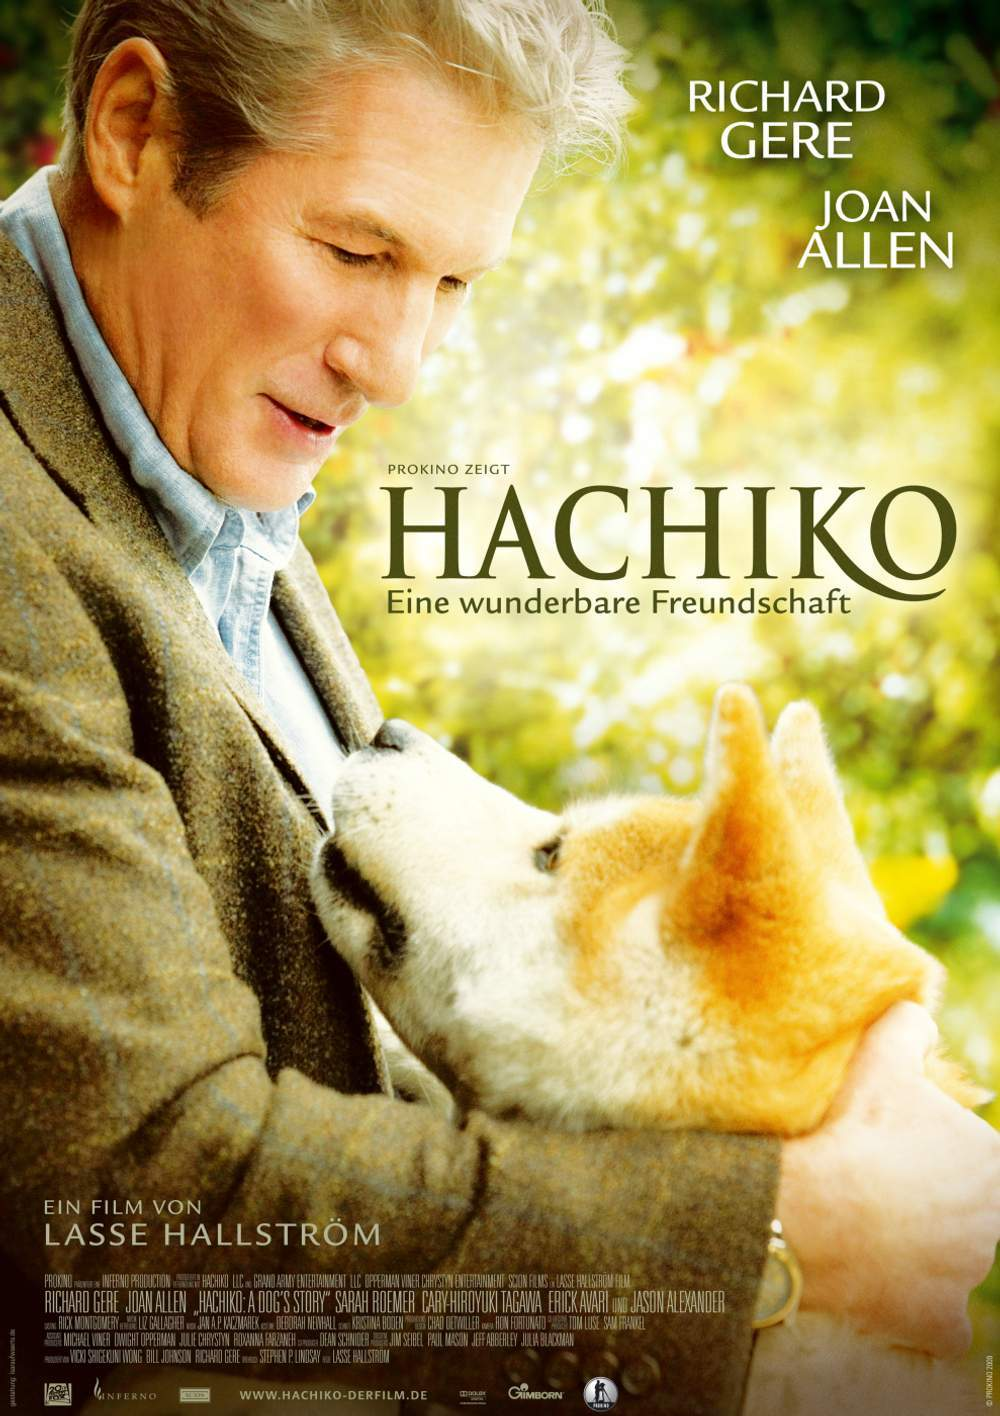 hachiko images Hachiko - Movie Poster HD wallpaper and ...